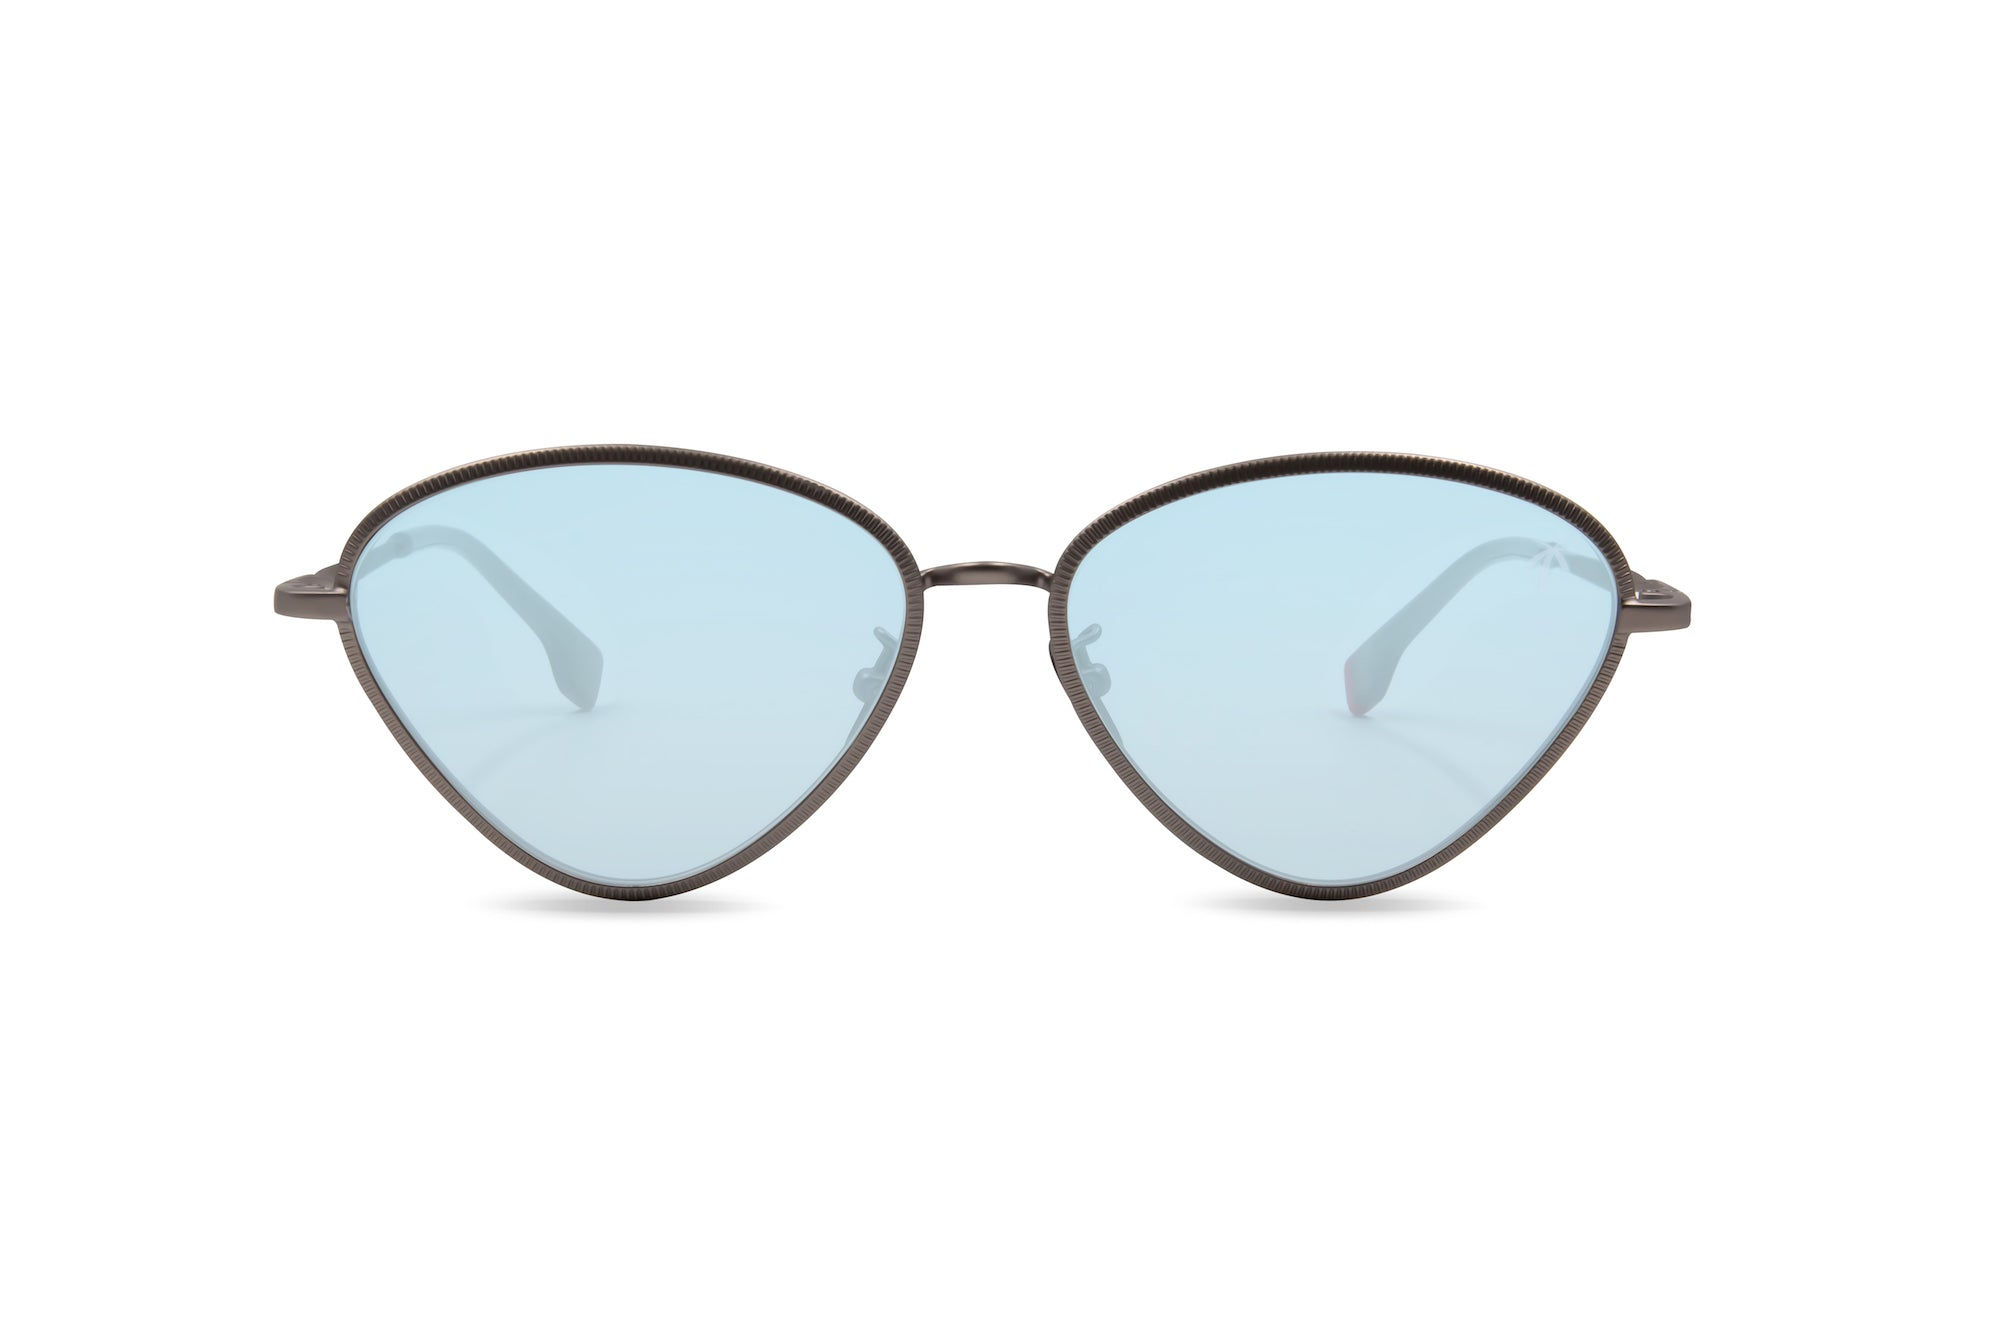 Olive in Light Blue (Special Edition) - Peppertint - Designer sunglasses